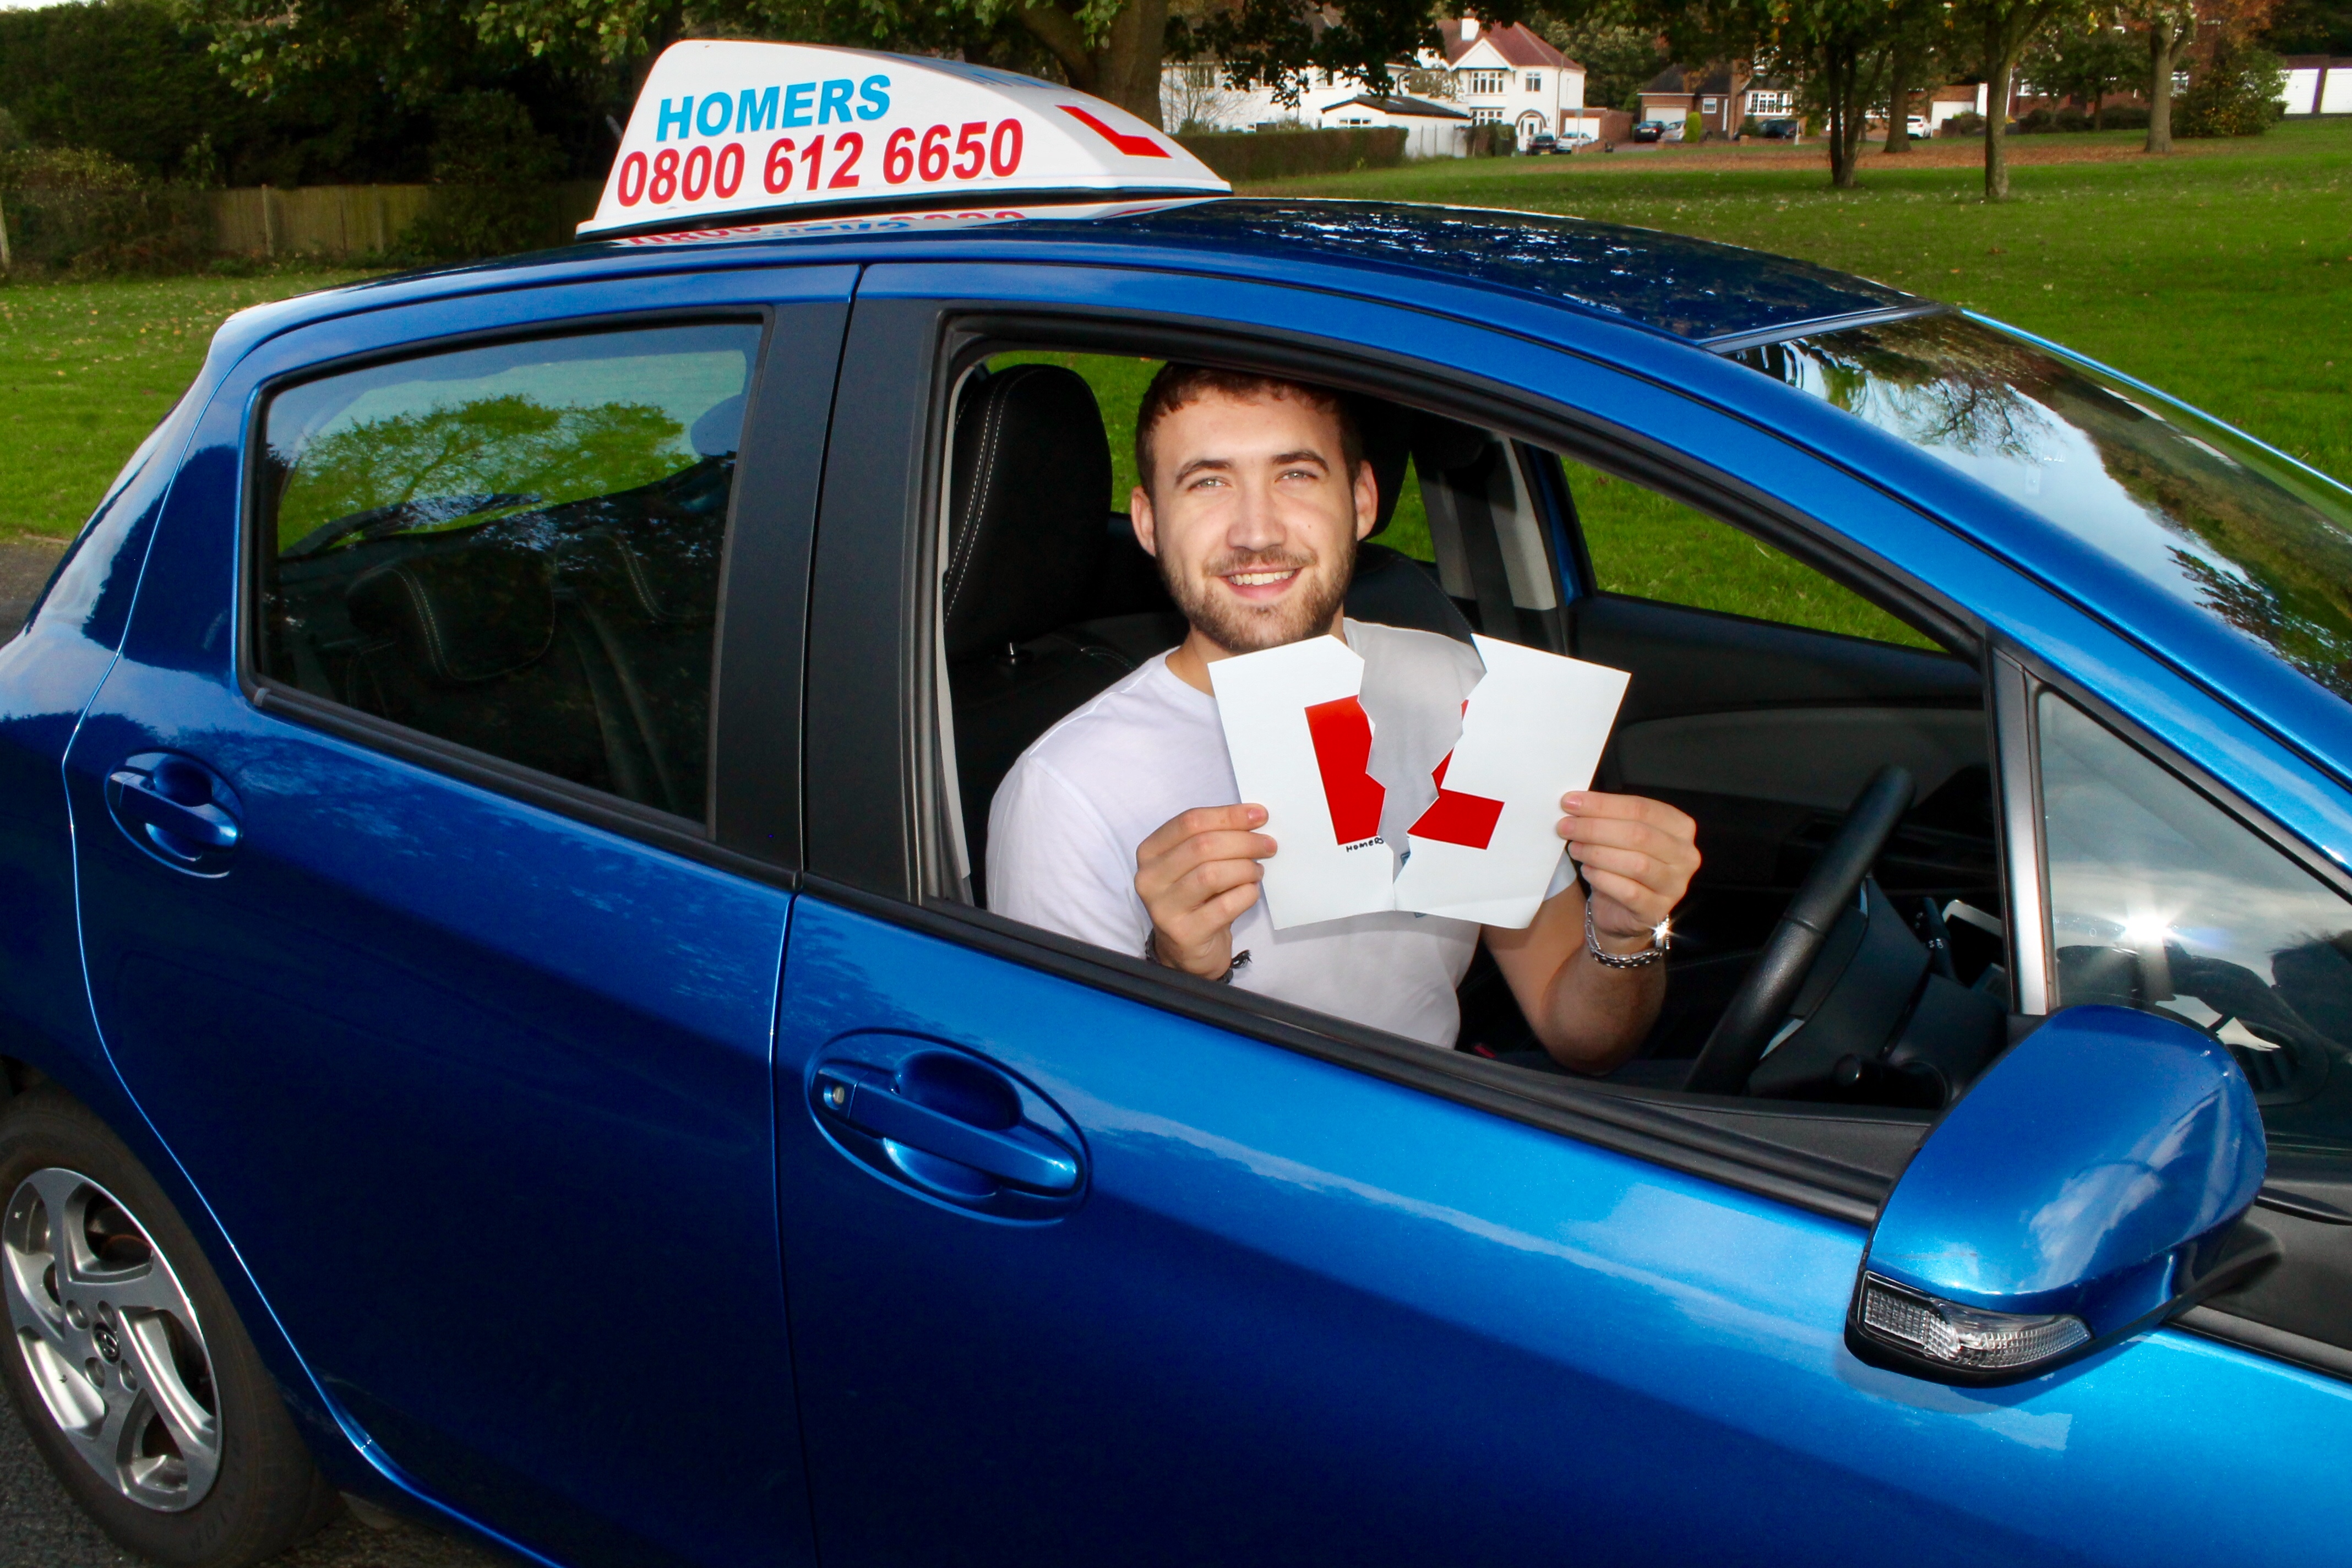 Driving Lessons Wolverhampton, 10 Hours £125 | Homers